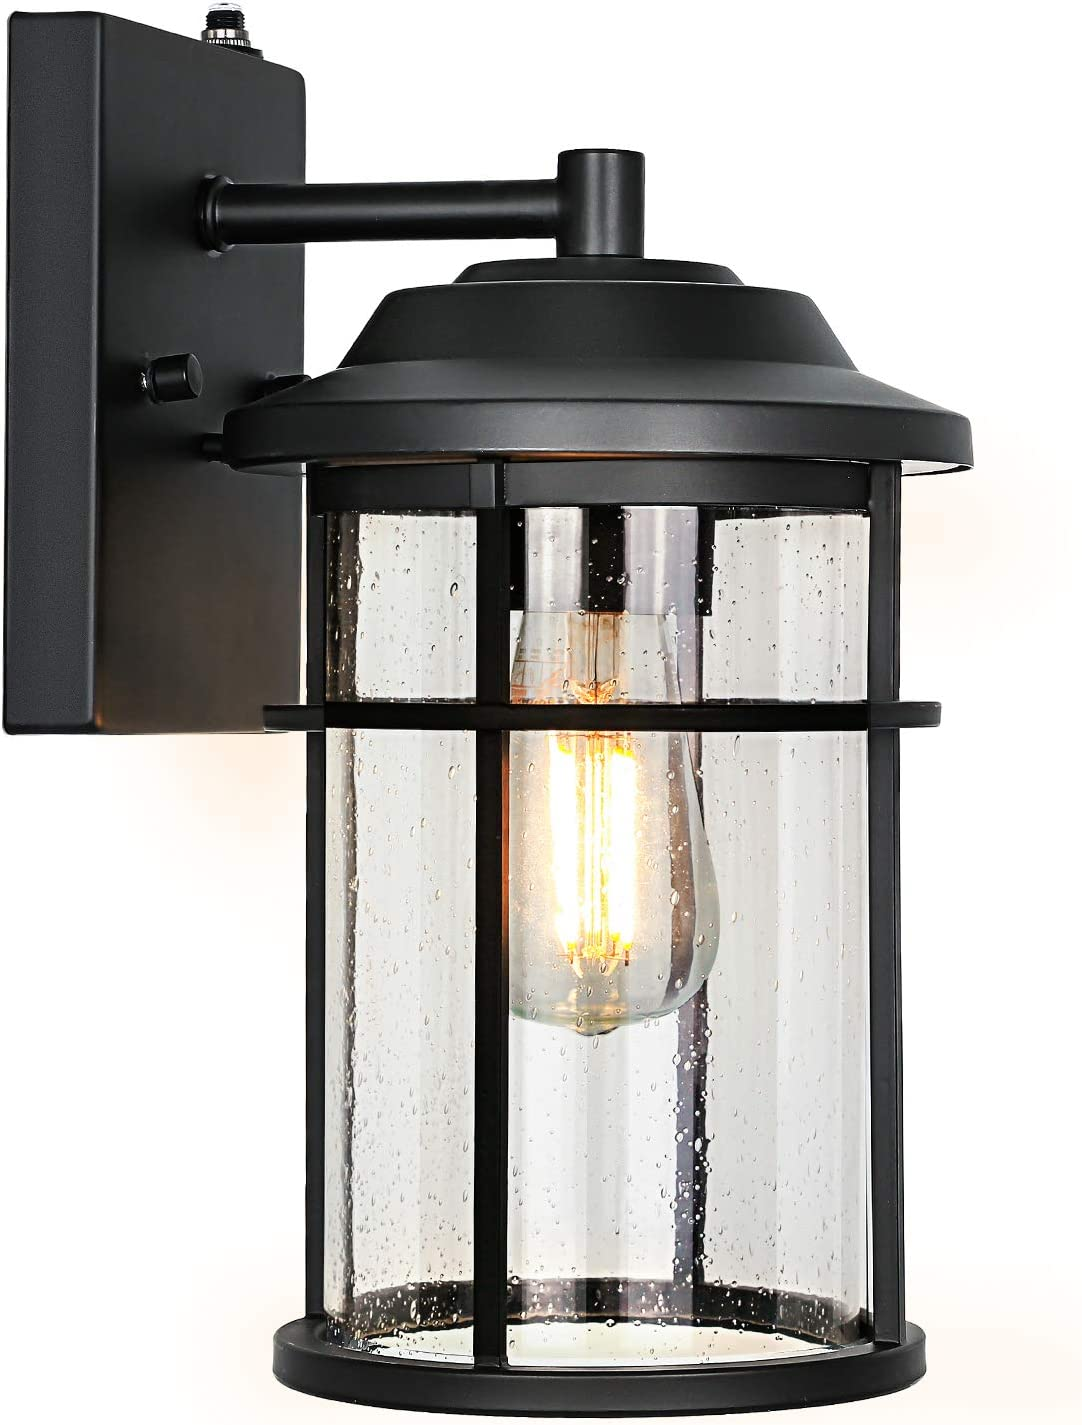 Outdoor Wall Light Fixture with Dusk to Dawn Photocell, LED Bulb Included, Matte Black Wall Sconce with Seeded Glass Shade for Entryway, Porch, Front Door, ETL Listed